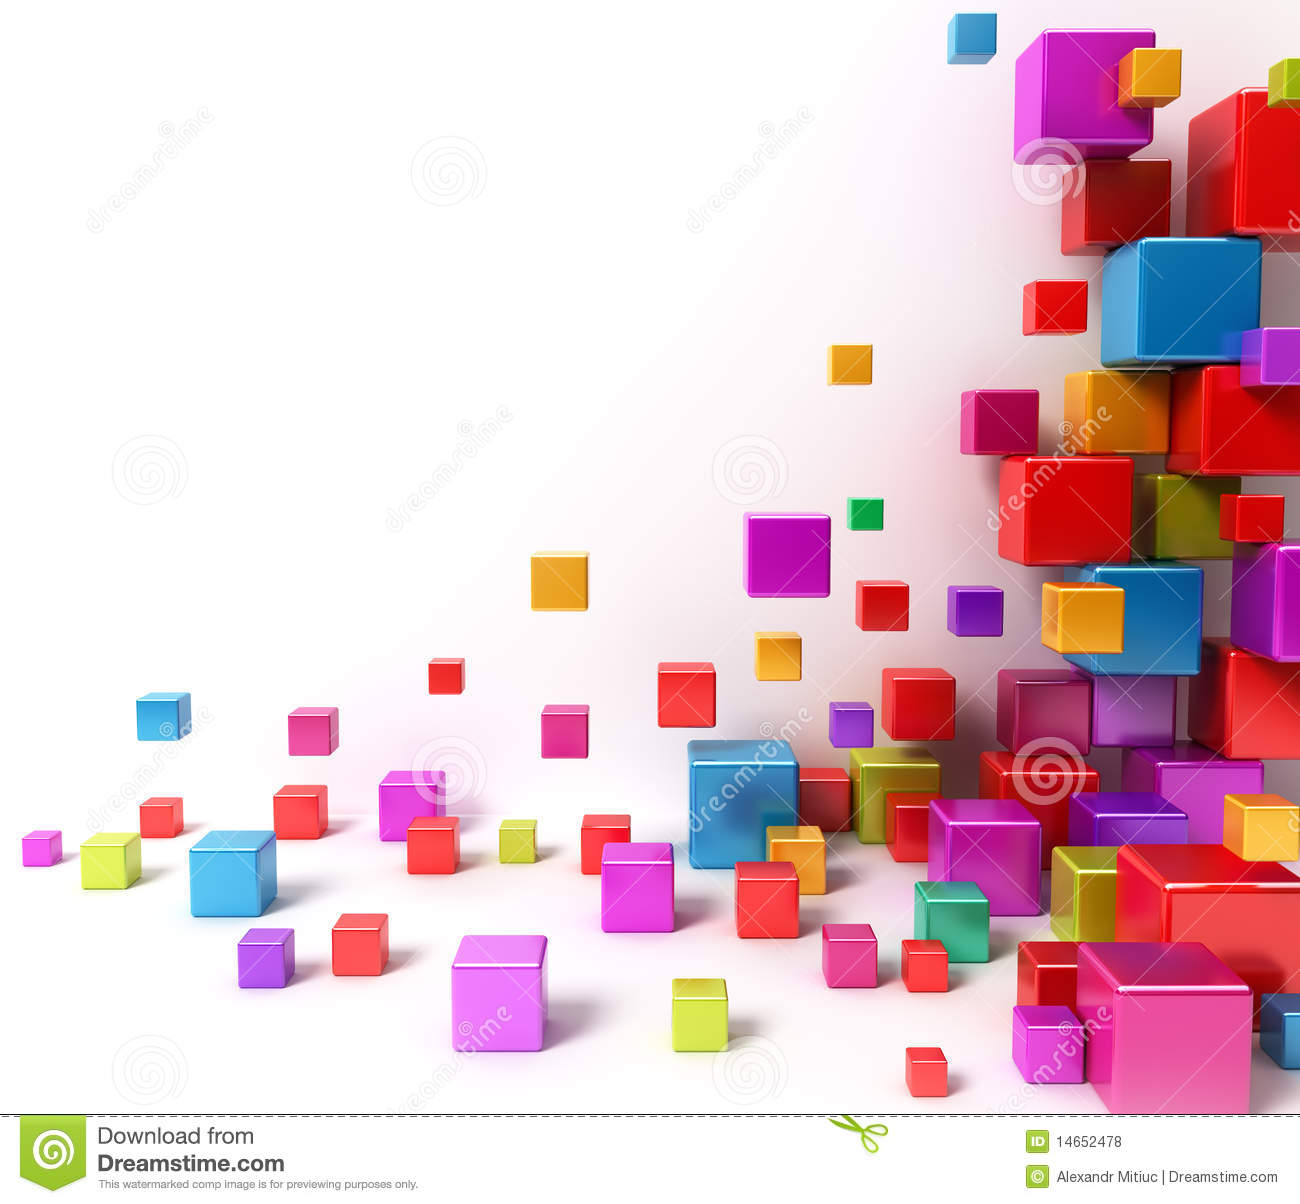 3d Geometric Shapes Wallpaper White Colorful Boxes Abstract Background Royalty Free Stock